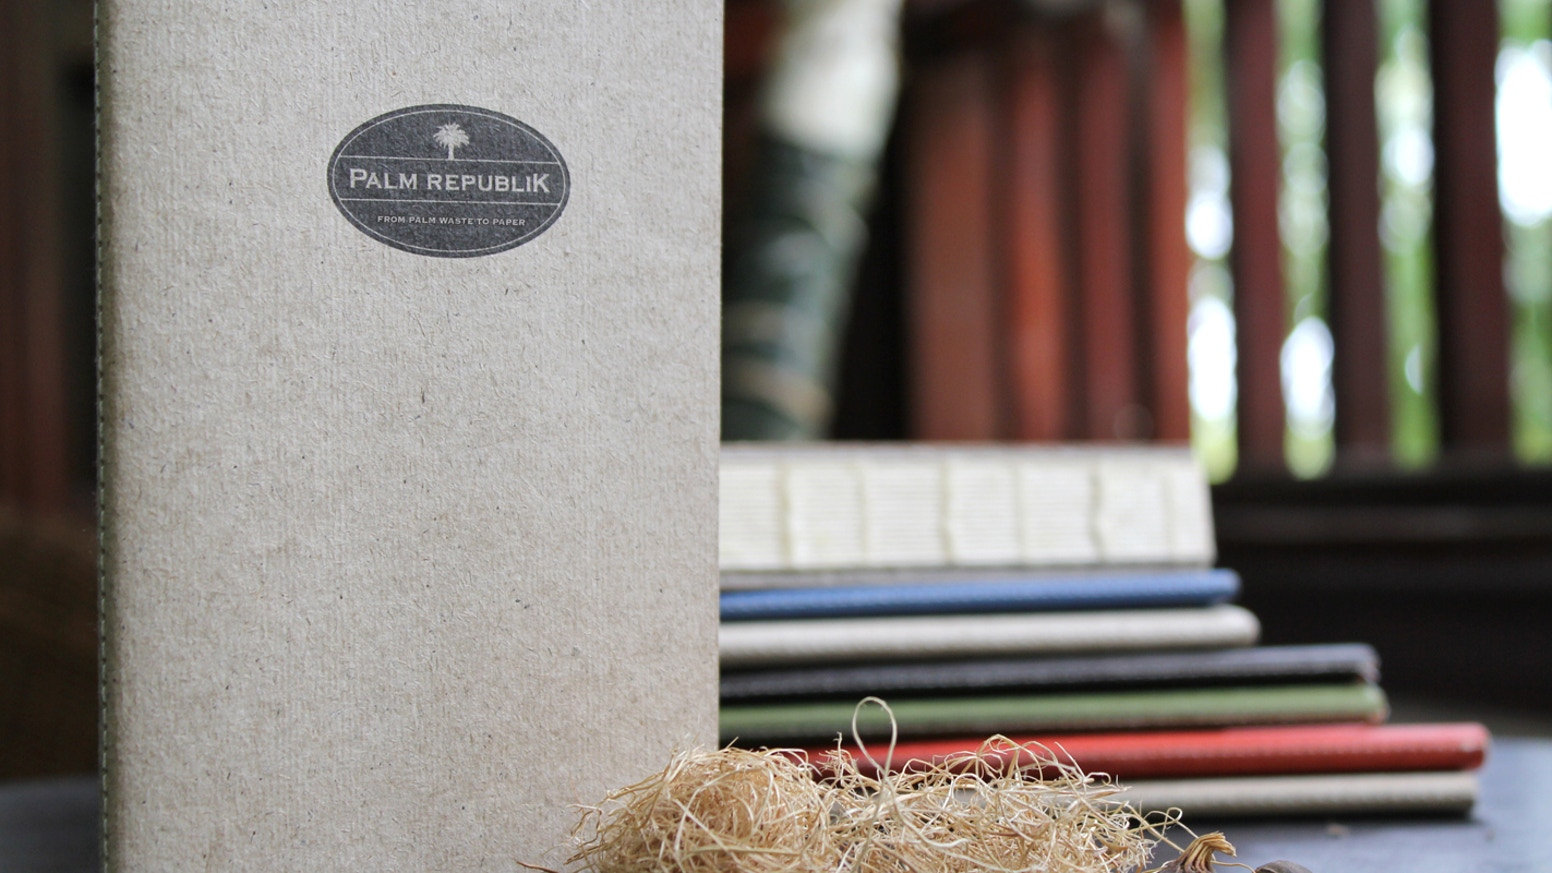 Notebooks and journals made from sustainable tree-free paper that is derived from the agricultural waste of palm oil production